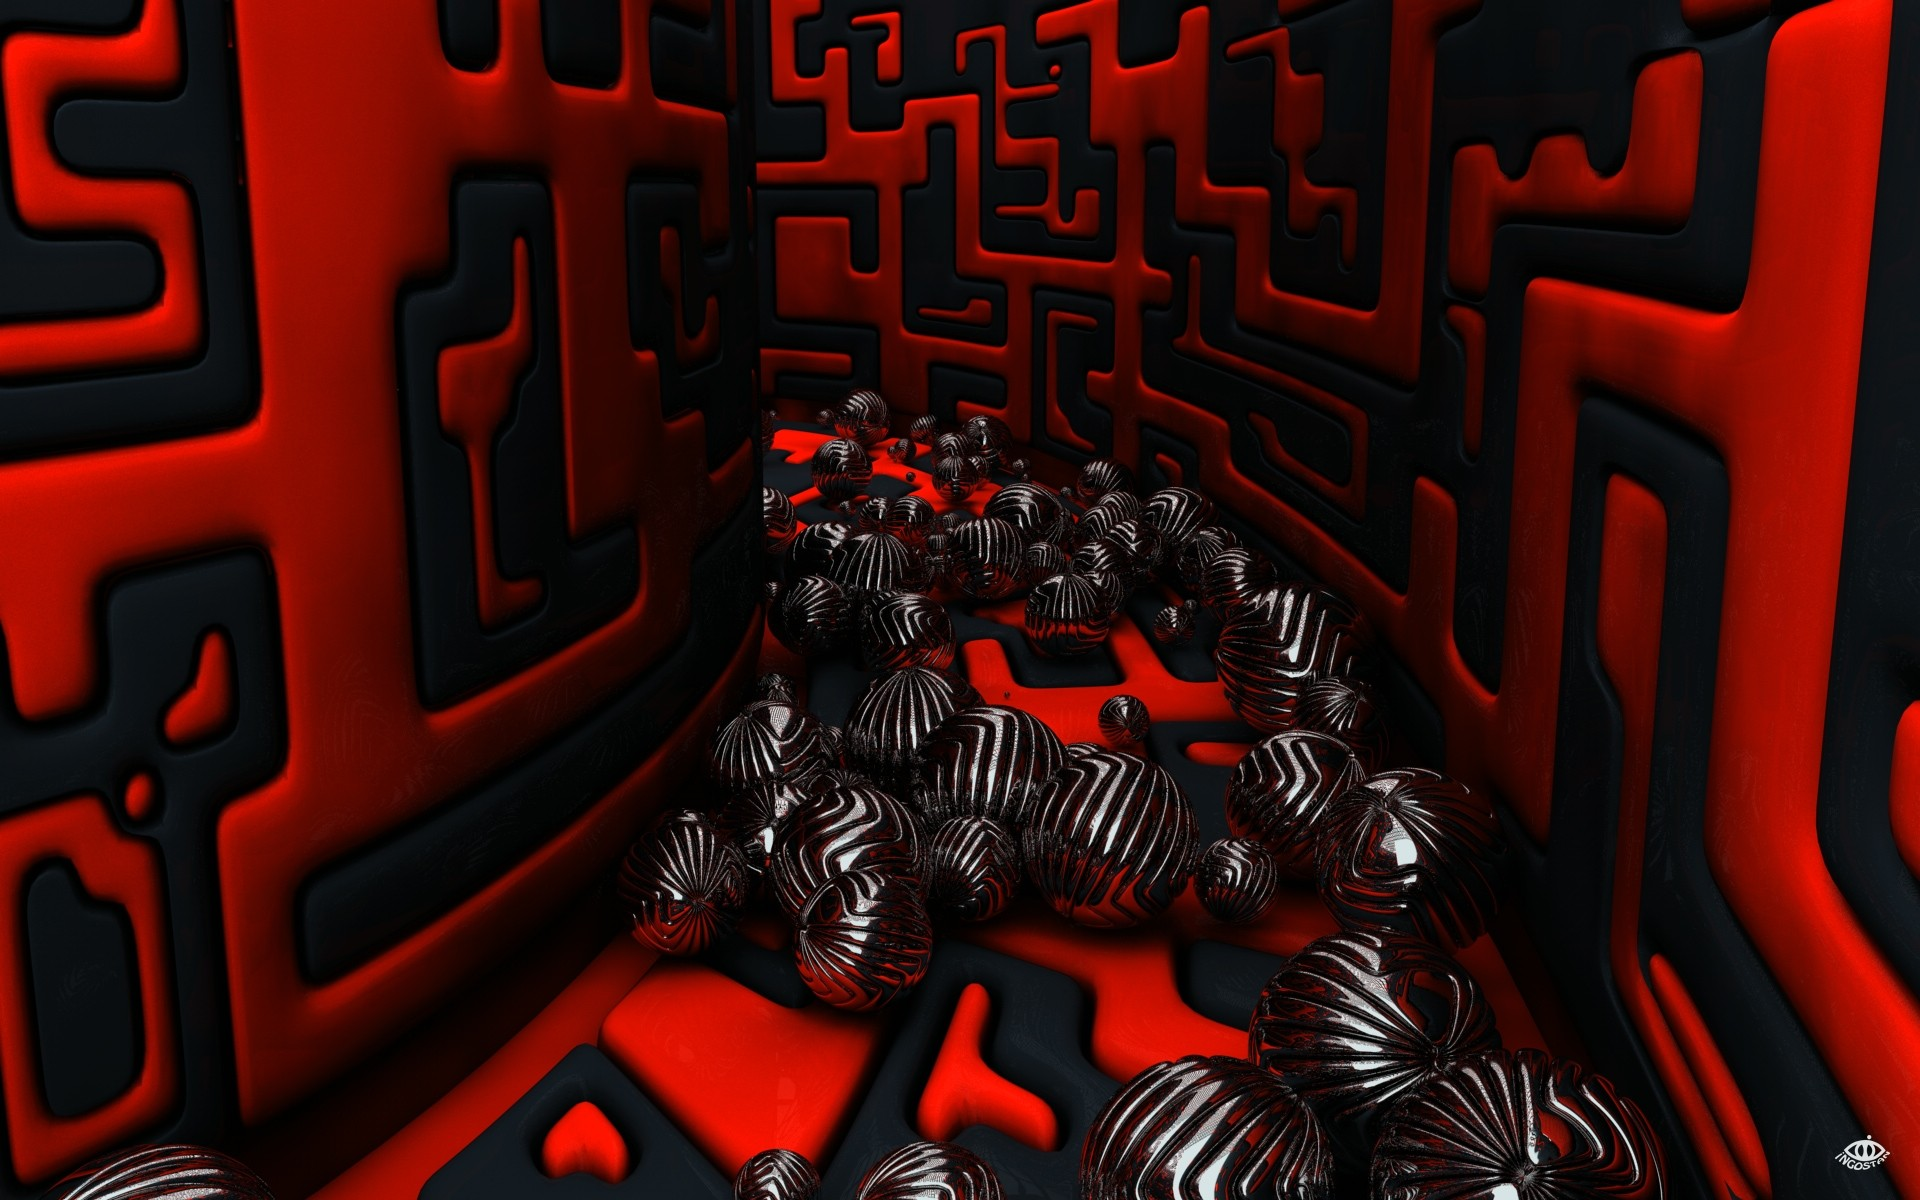 Wallpaper 3D, Cubes, Black, Red, Abstract, #639